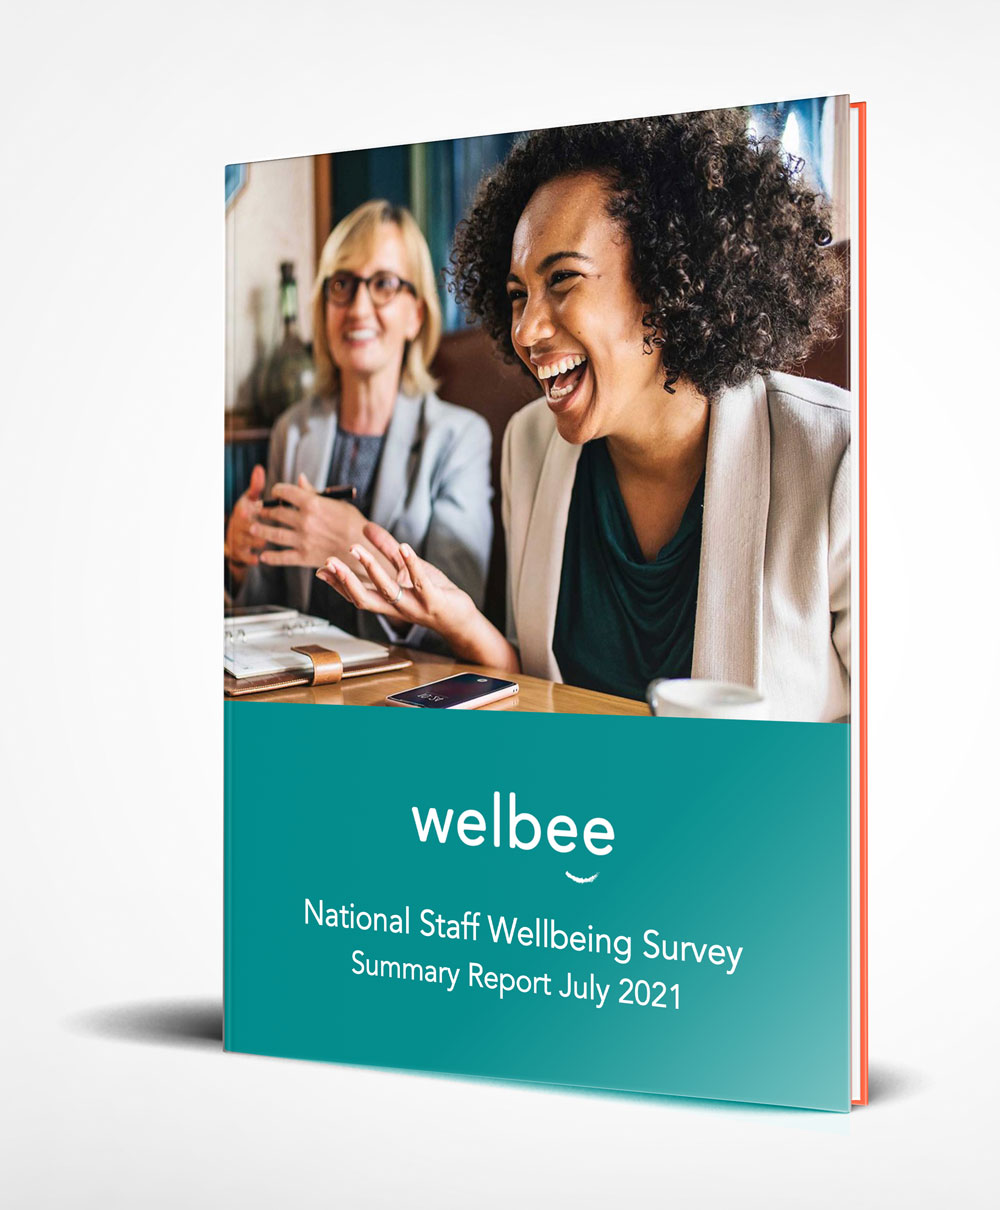 National-Staff-Wellbeing-Survey-Front-Cover